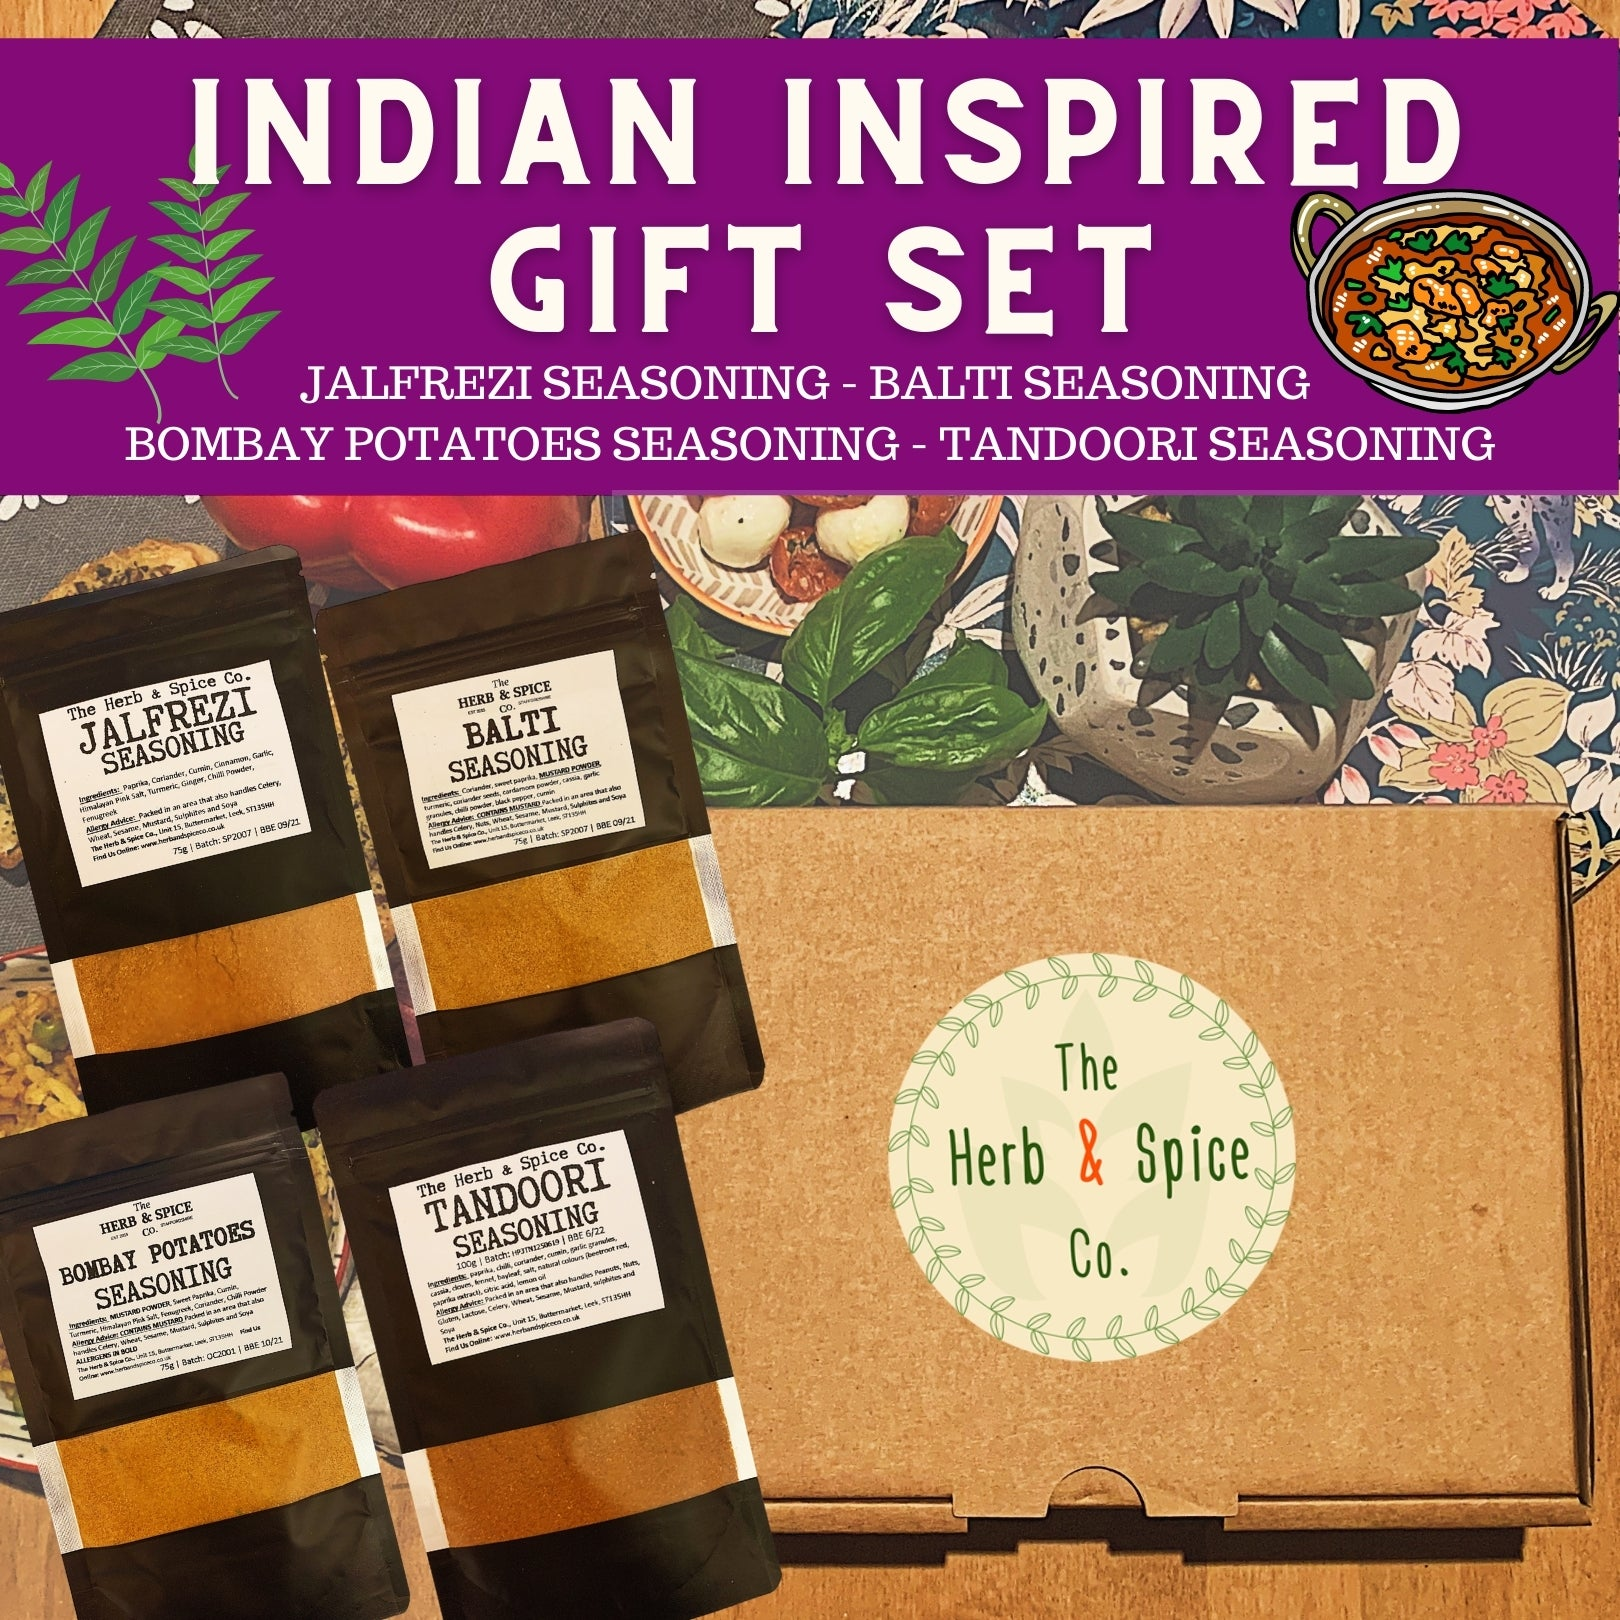 Indian Inspired Seasoning Gift Set The Herb & Spice Co.